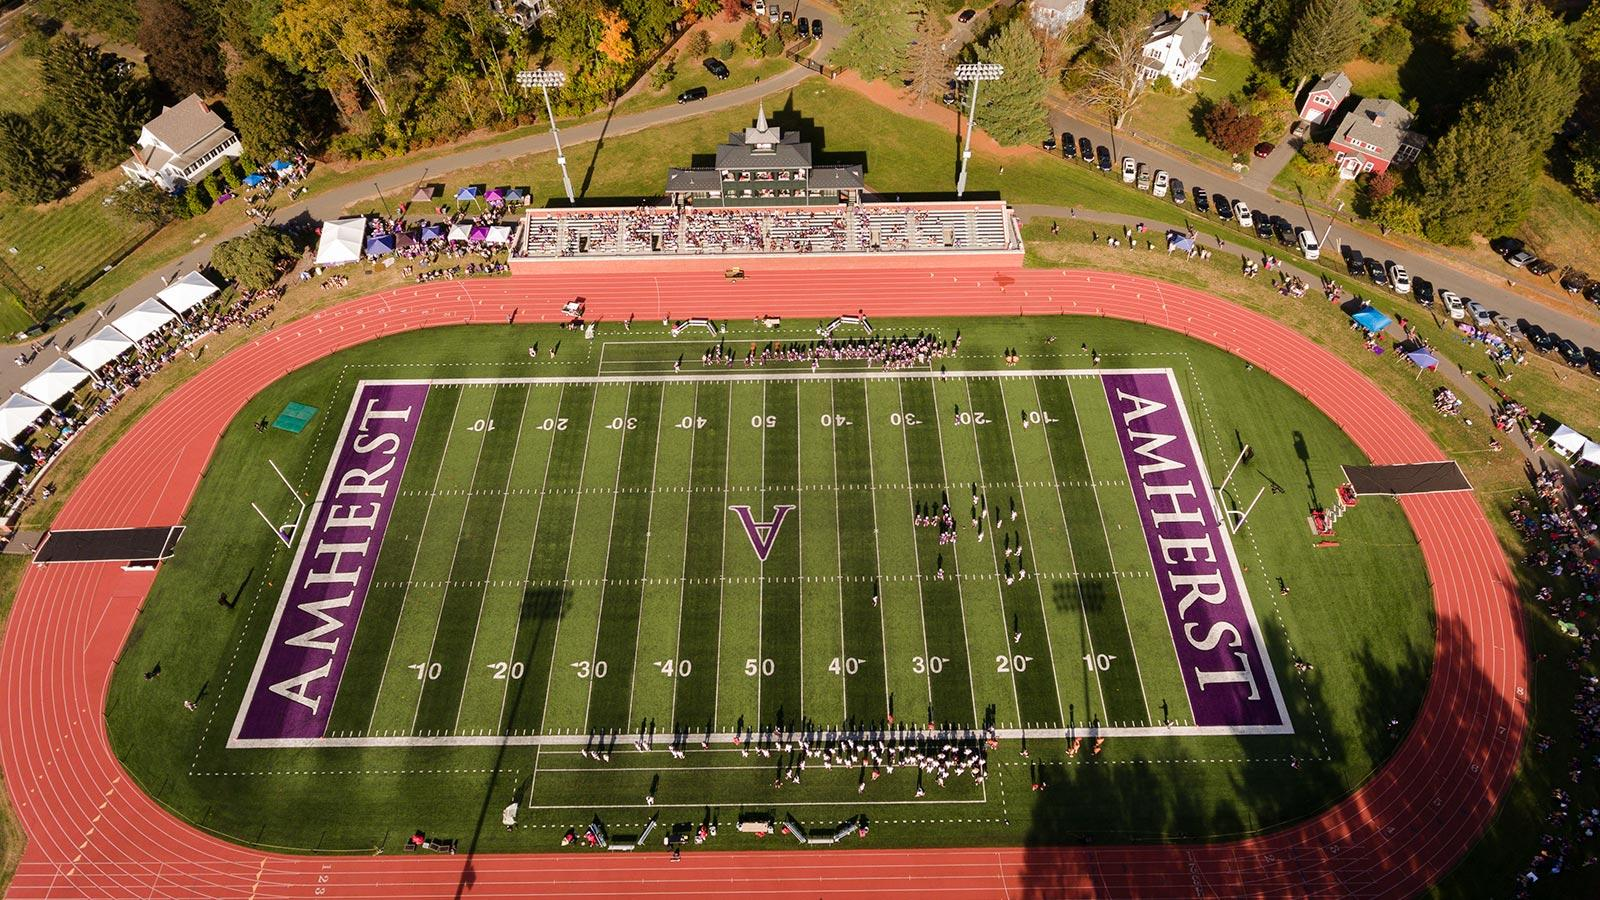 Aerial view of the Amherst College football stadium